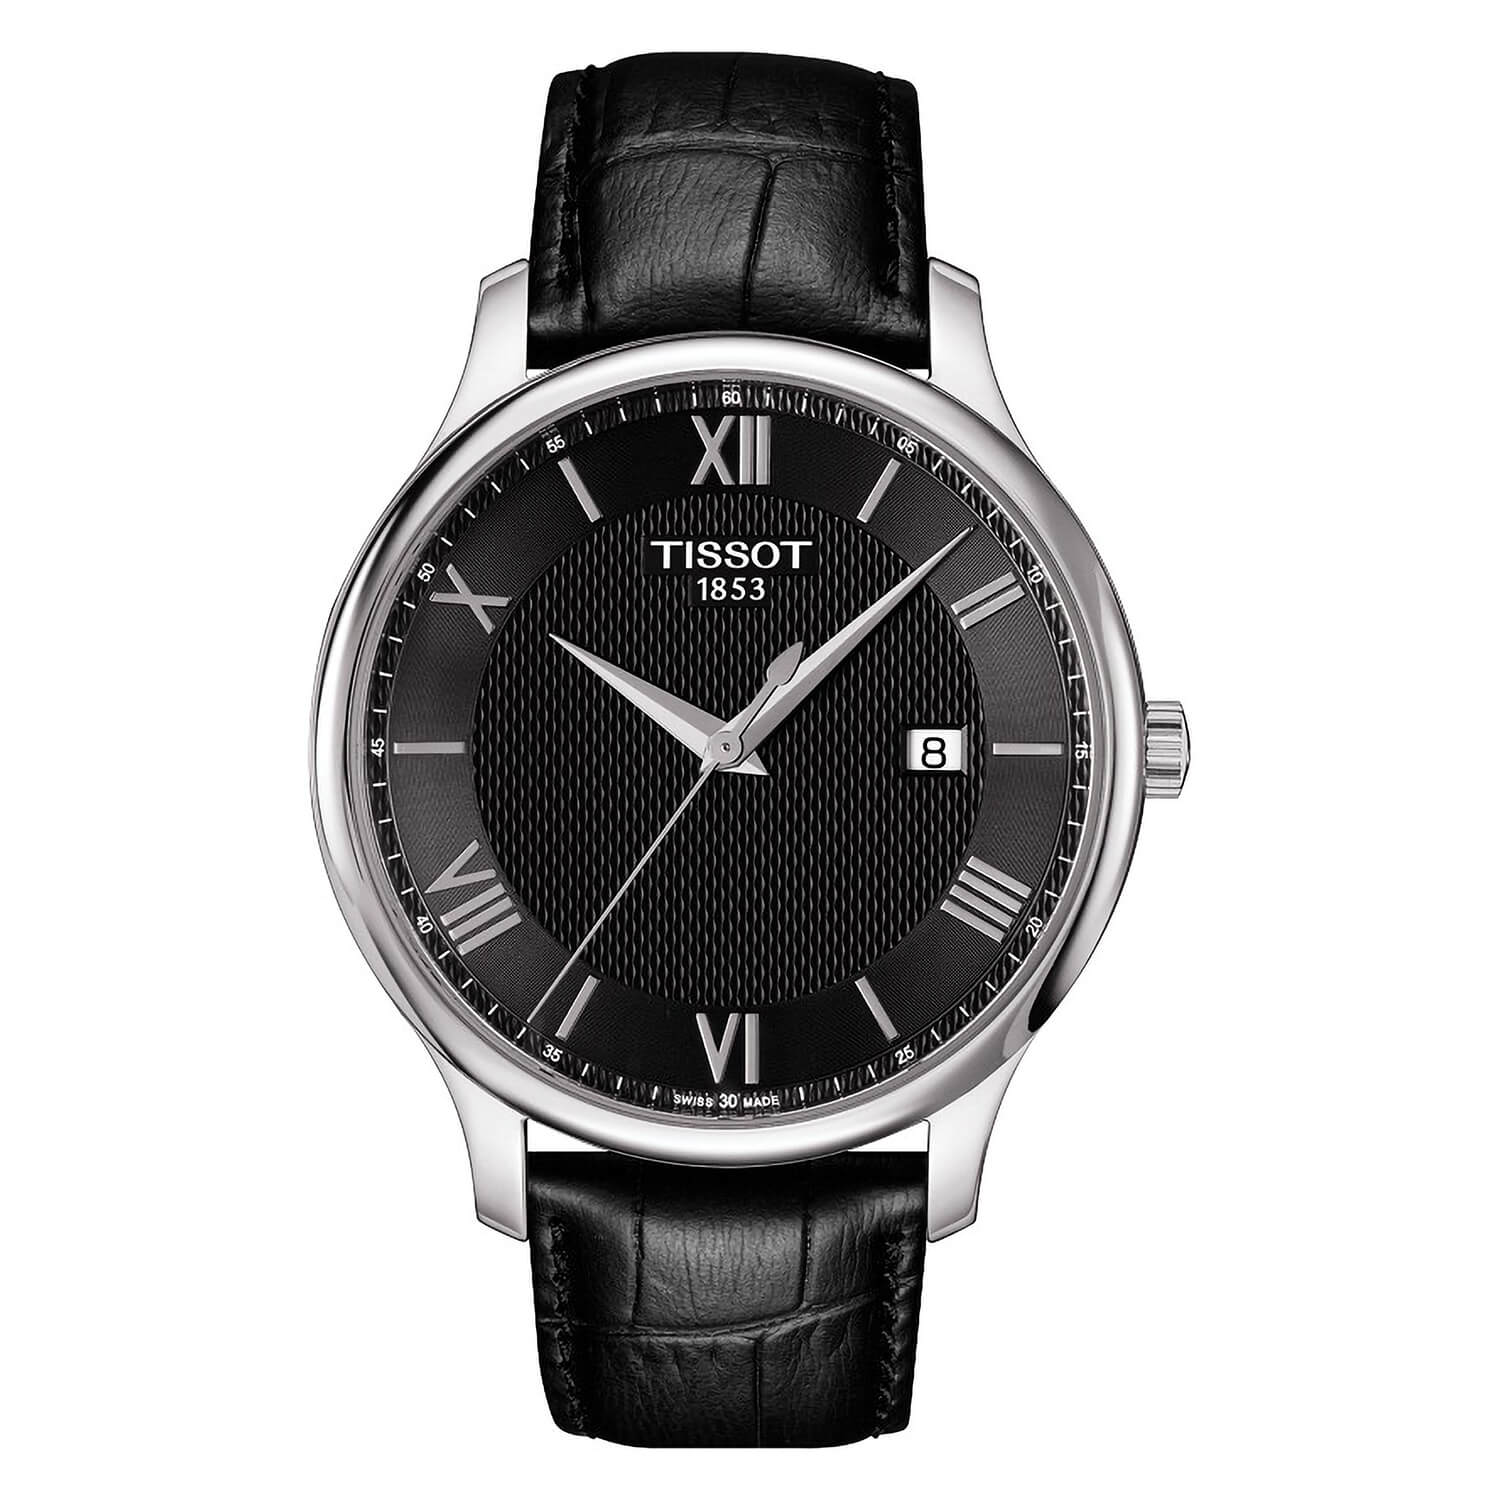 Tissot Tradition men's black leather strap watch